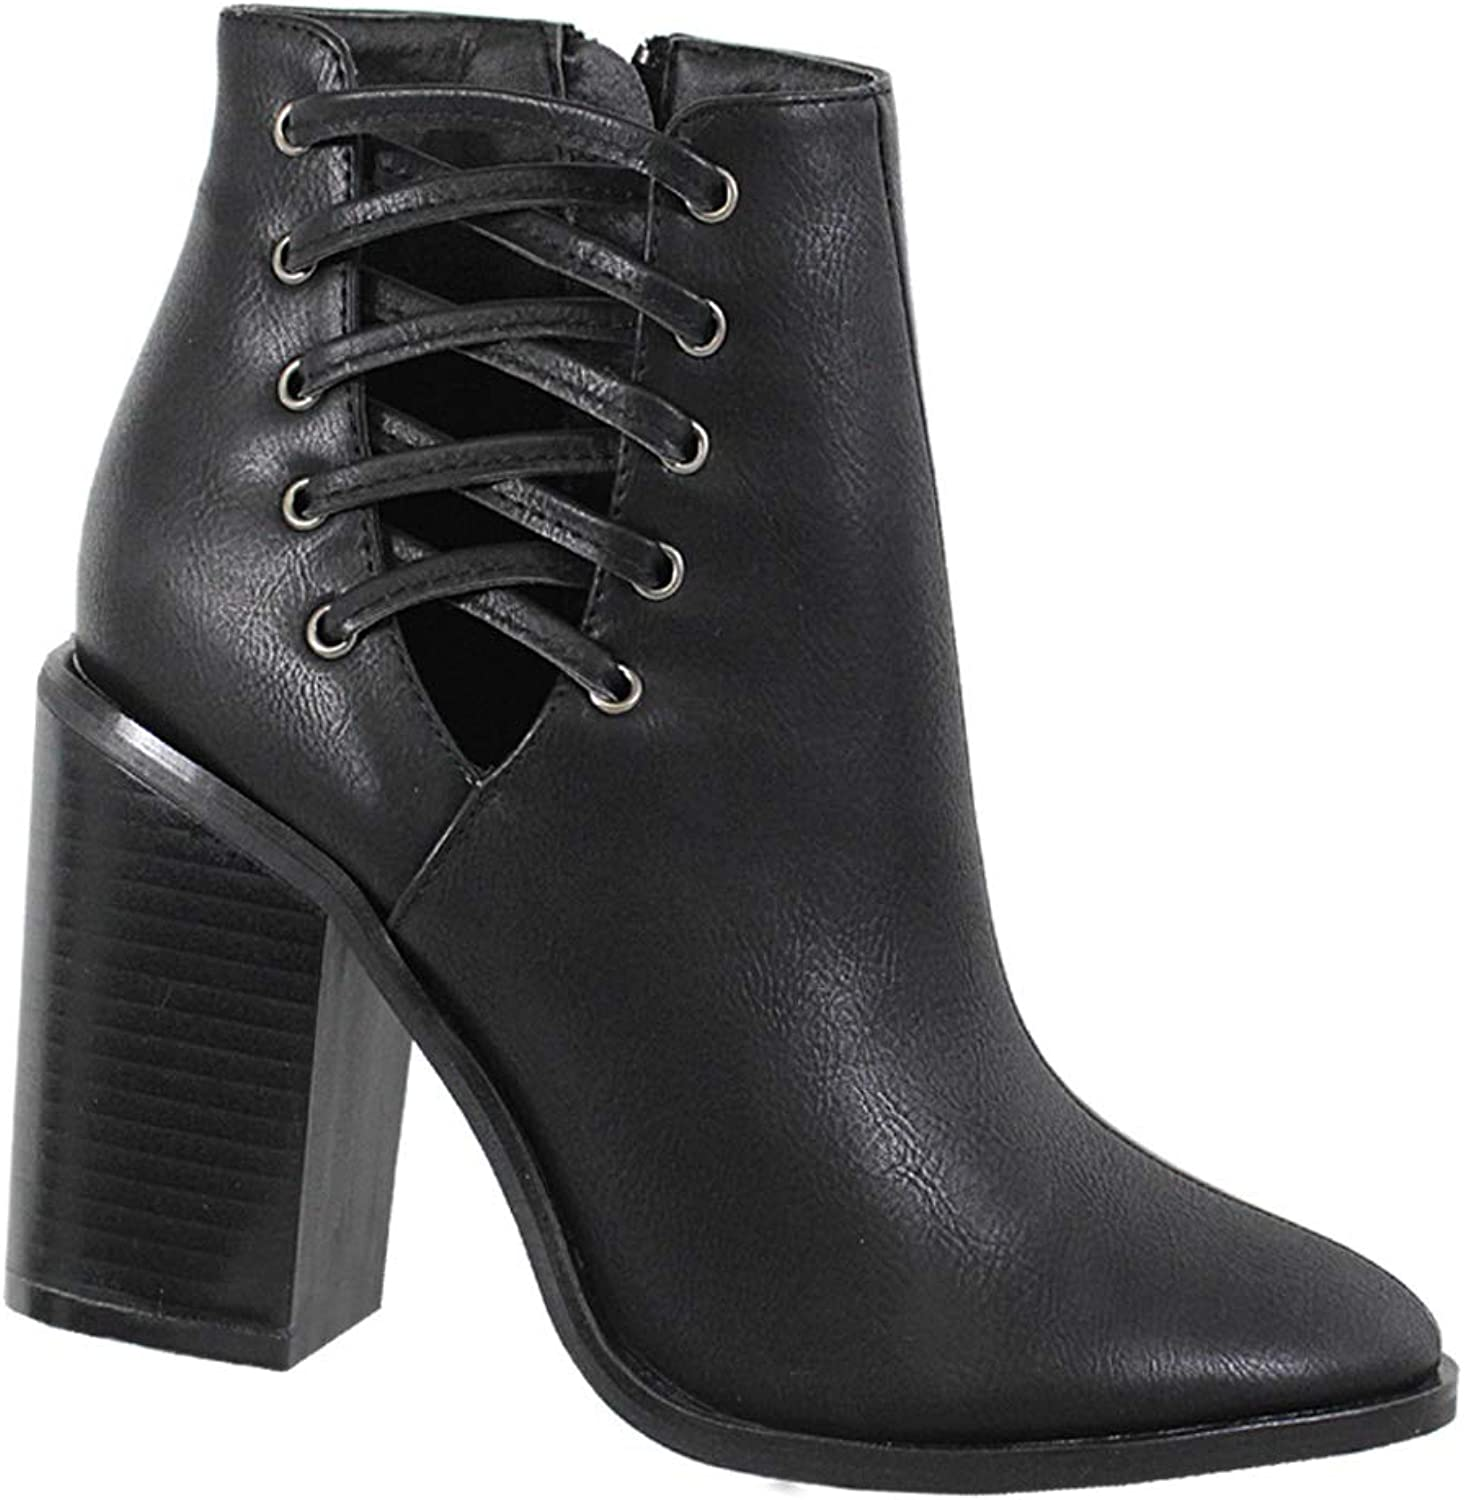 Yoki Women's REPLAY-22 Zip-up Heeled Ankle Boots